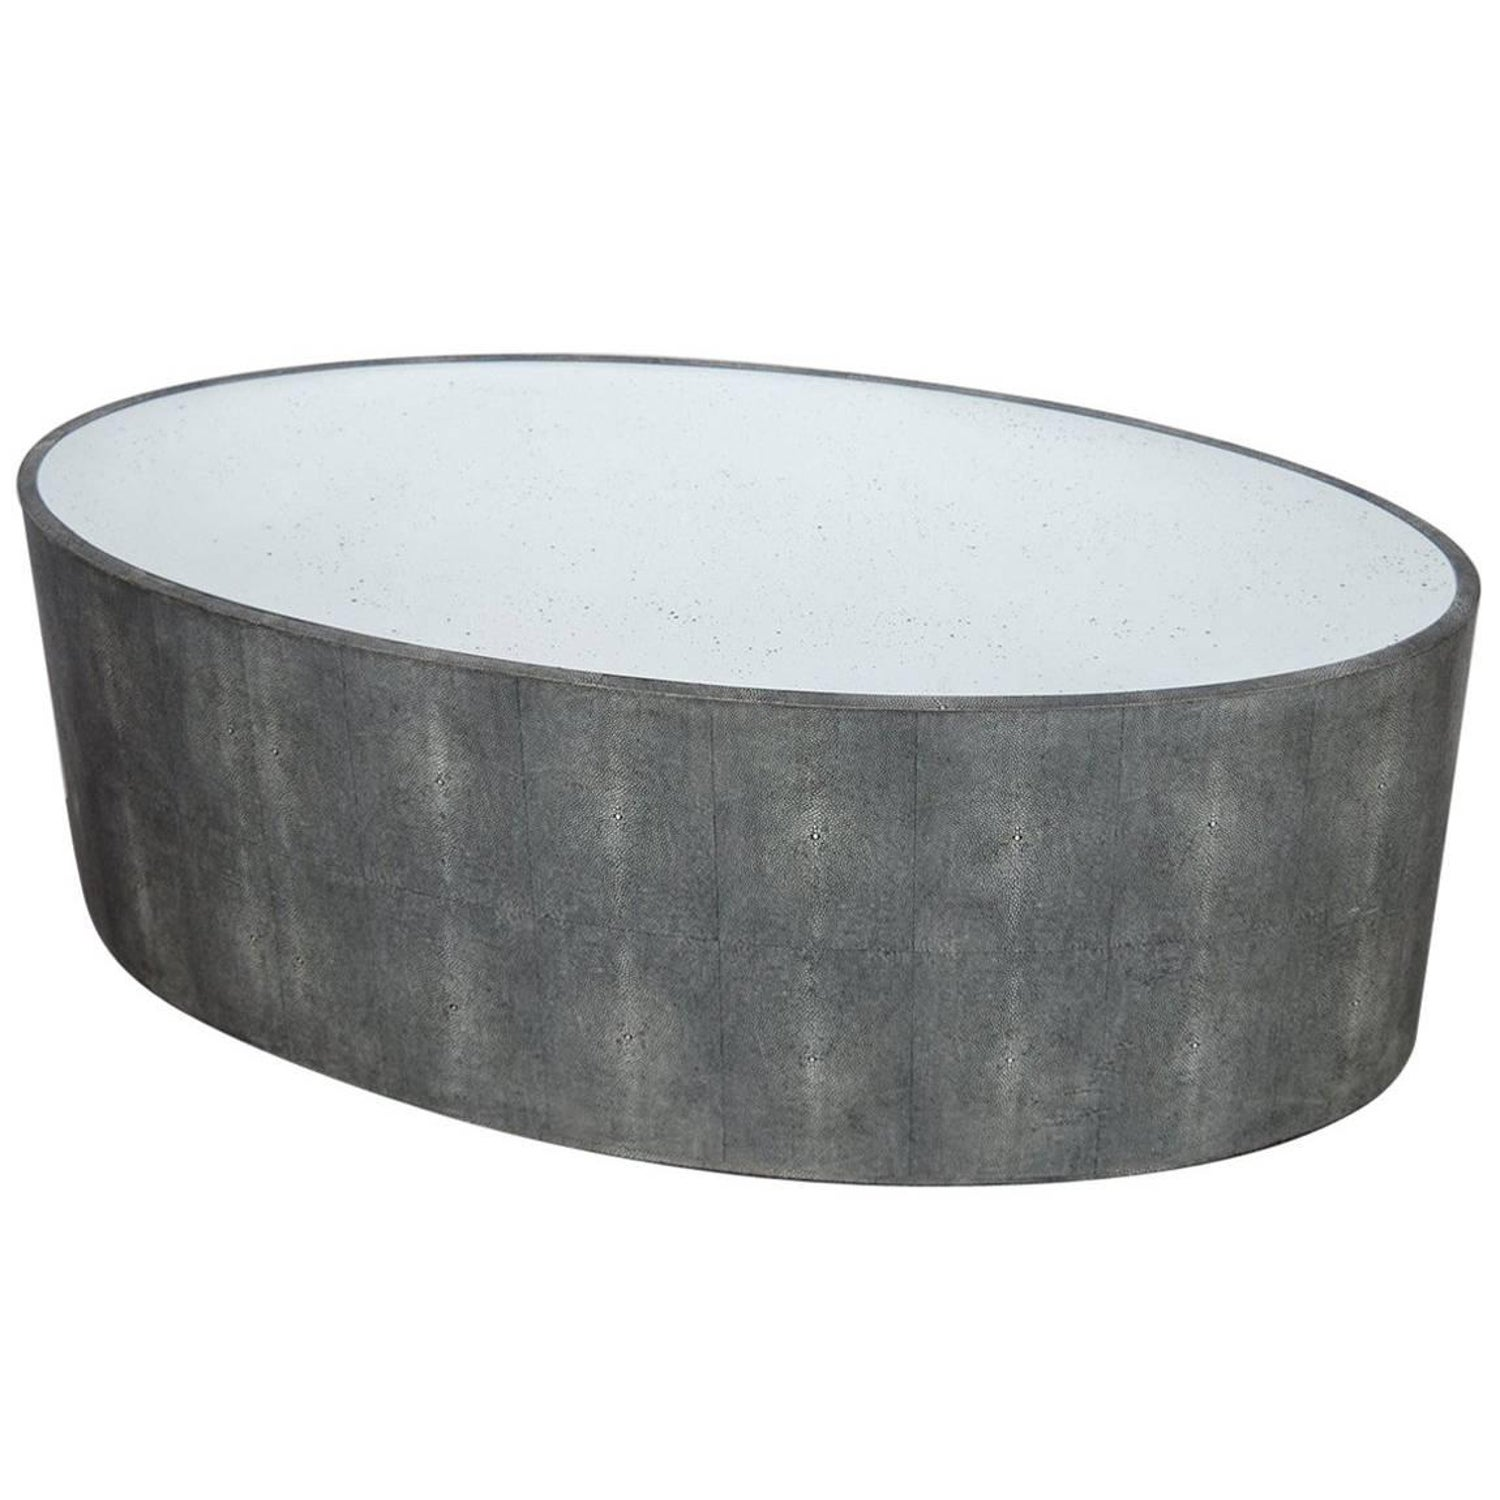 Oval Faux Shagreen Coffee Table For Sale at 1stdibs